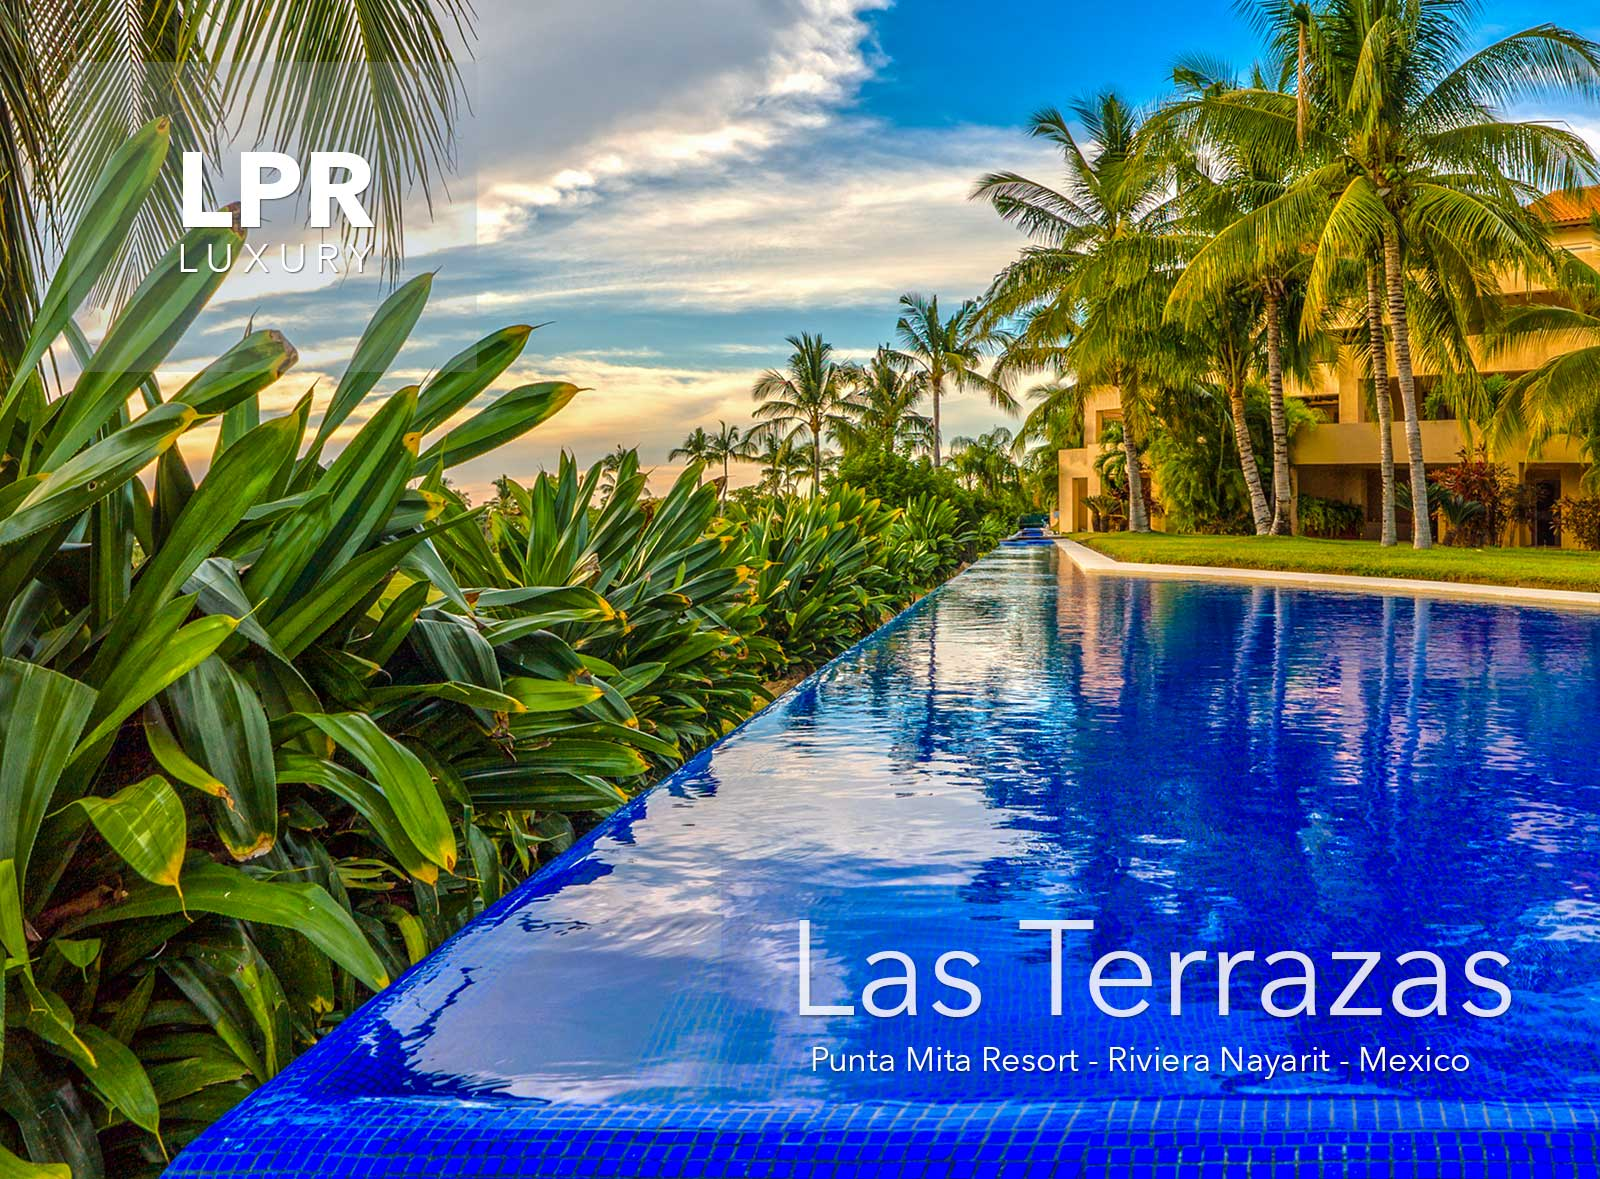 Las Terrazas - Golf course condos at the Punta Mita Resort - North Shore Puerto Vallarta luxury real estate and vacation rentals